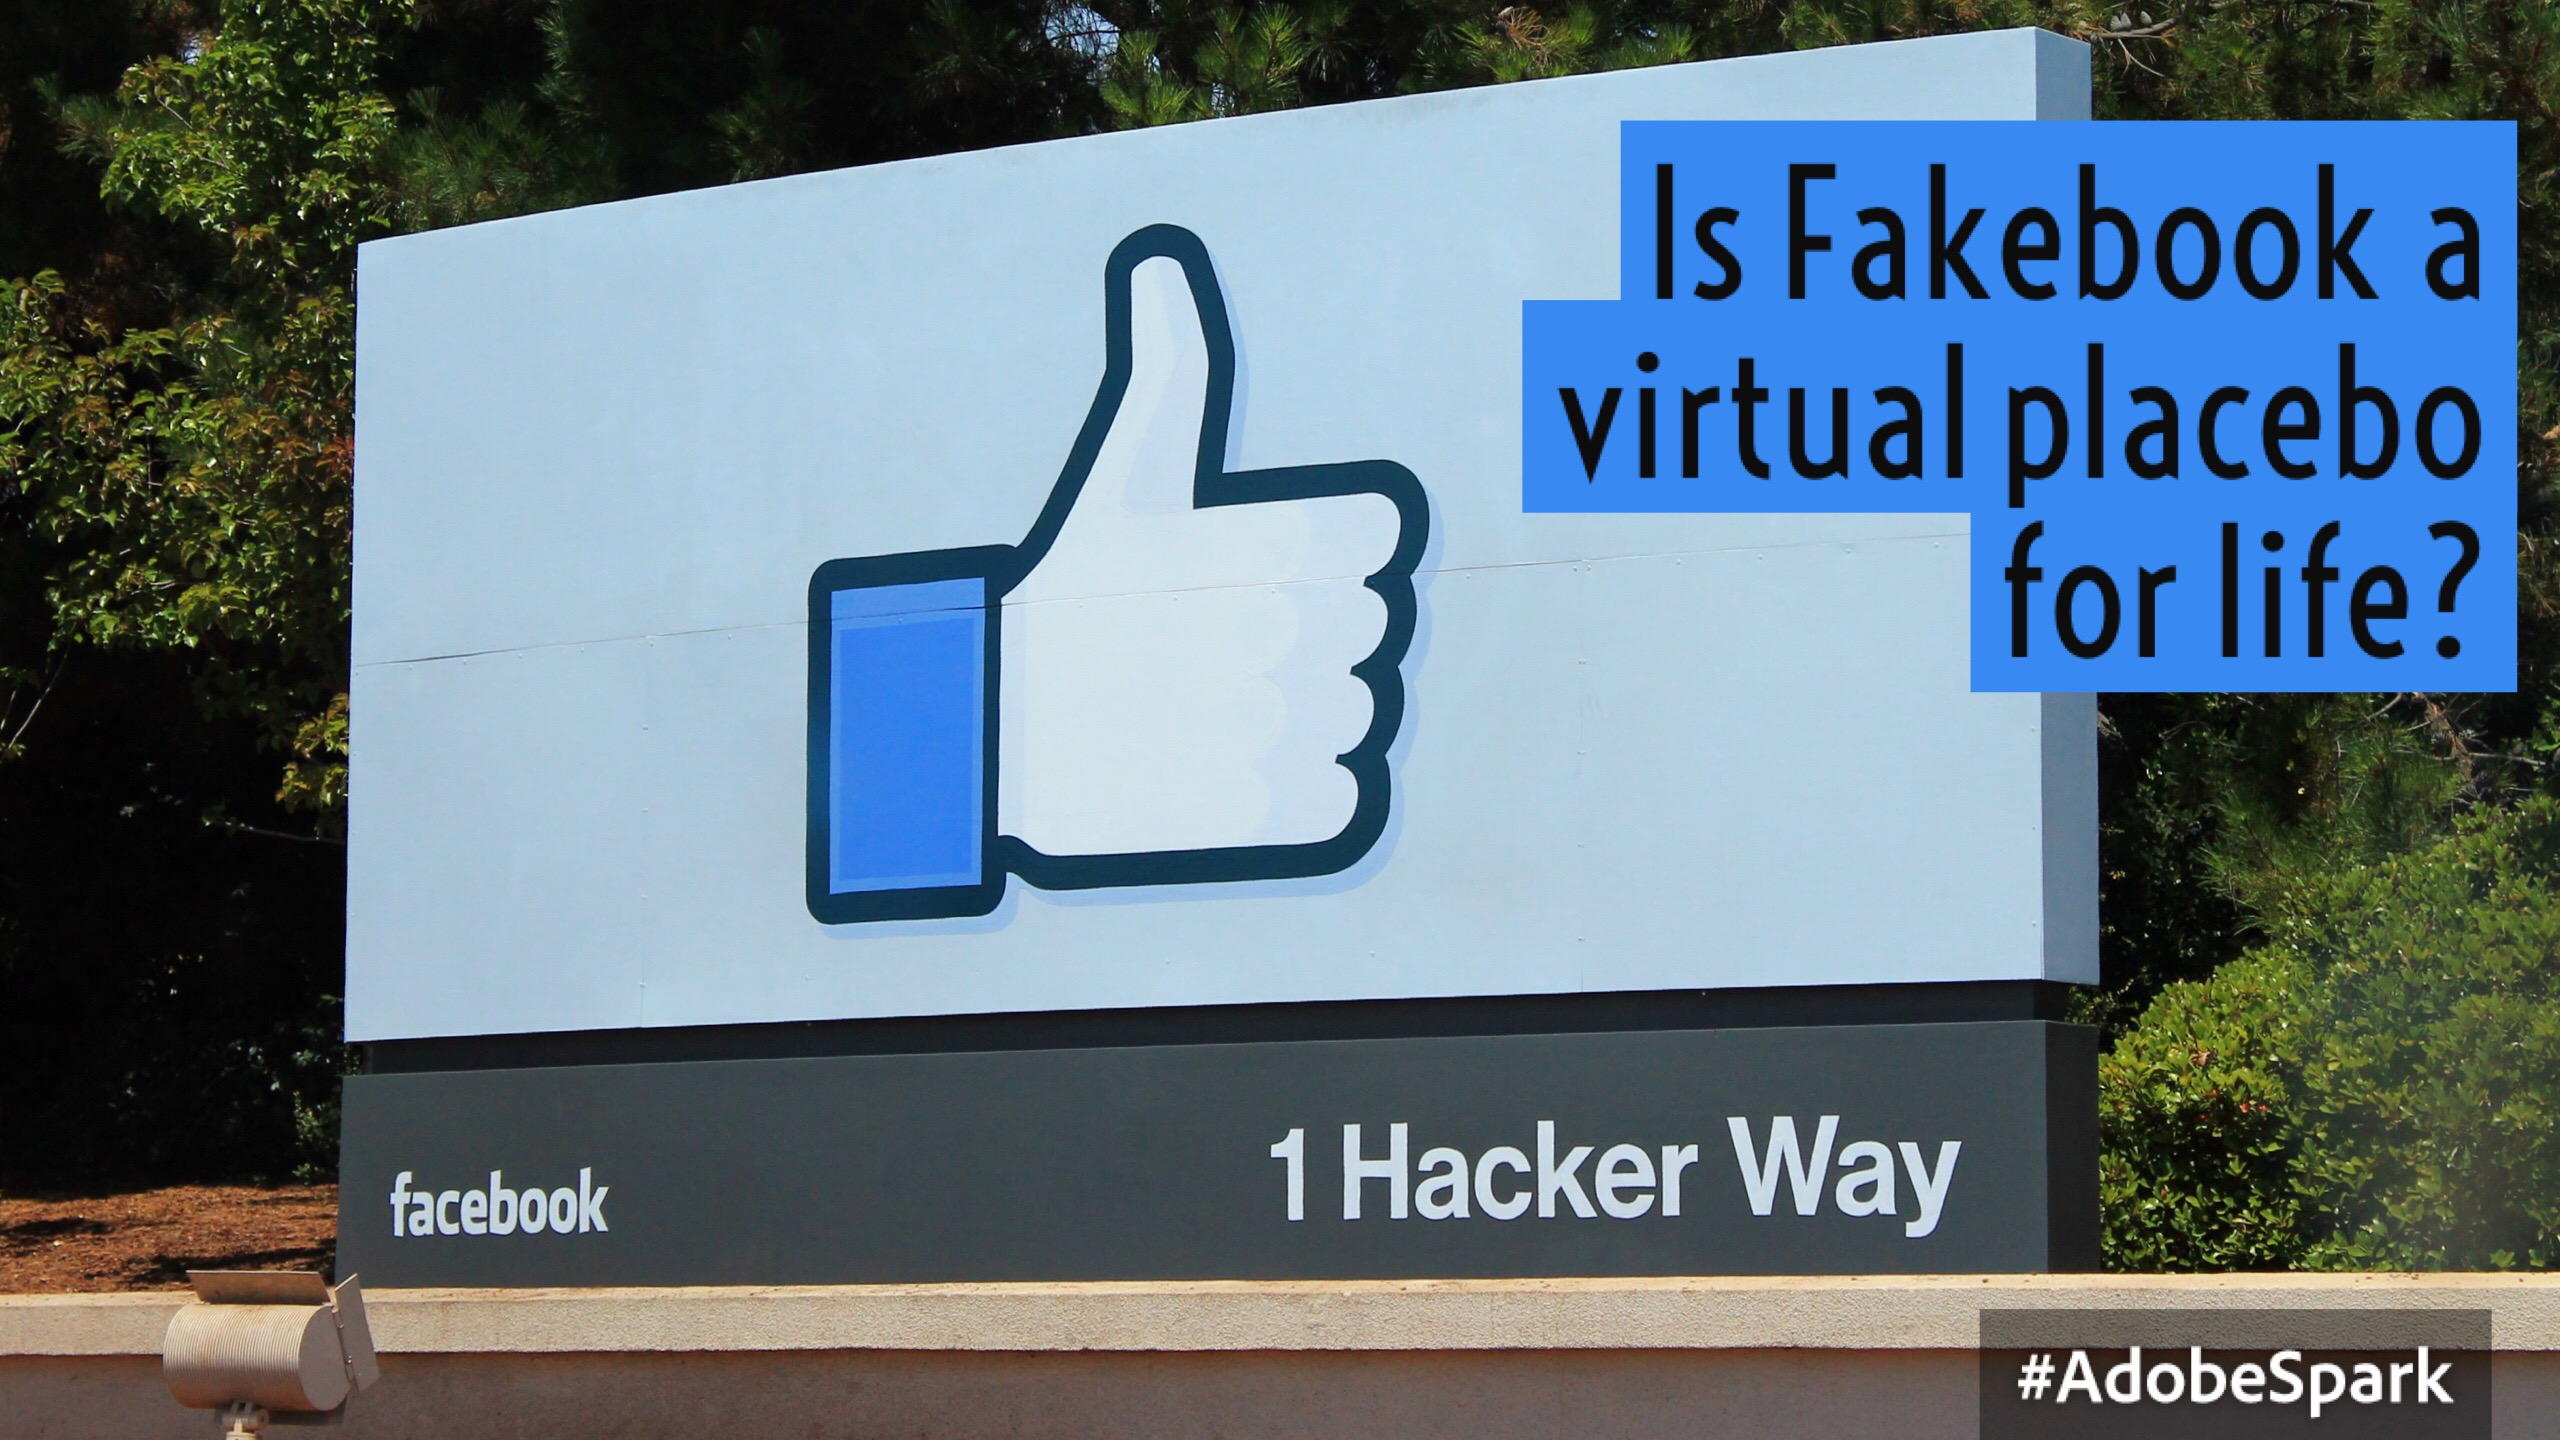 Fakebook Part 1: Is Facebook a virtual placebo for life?